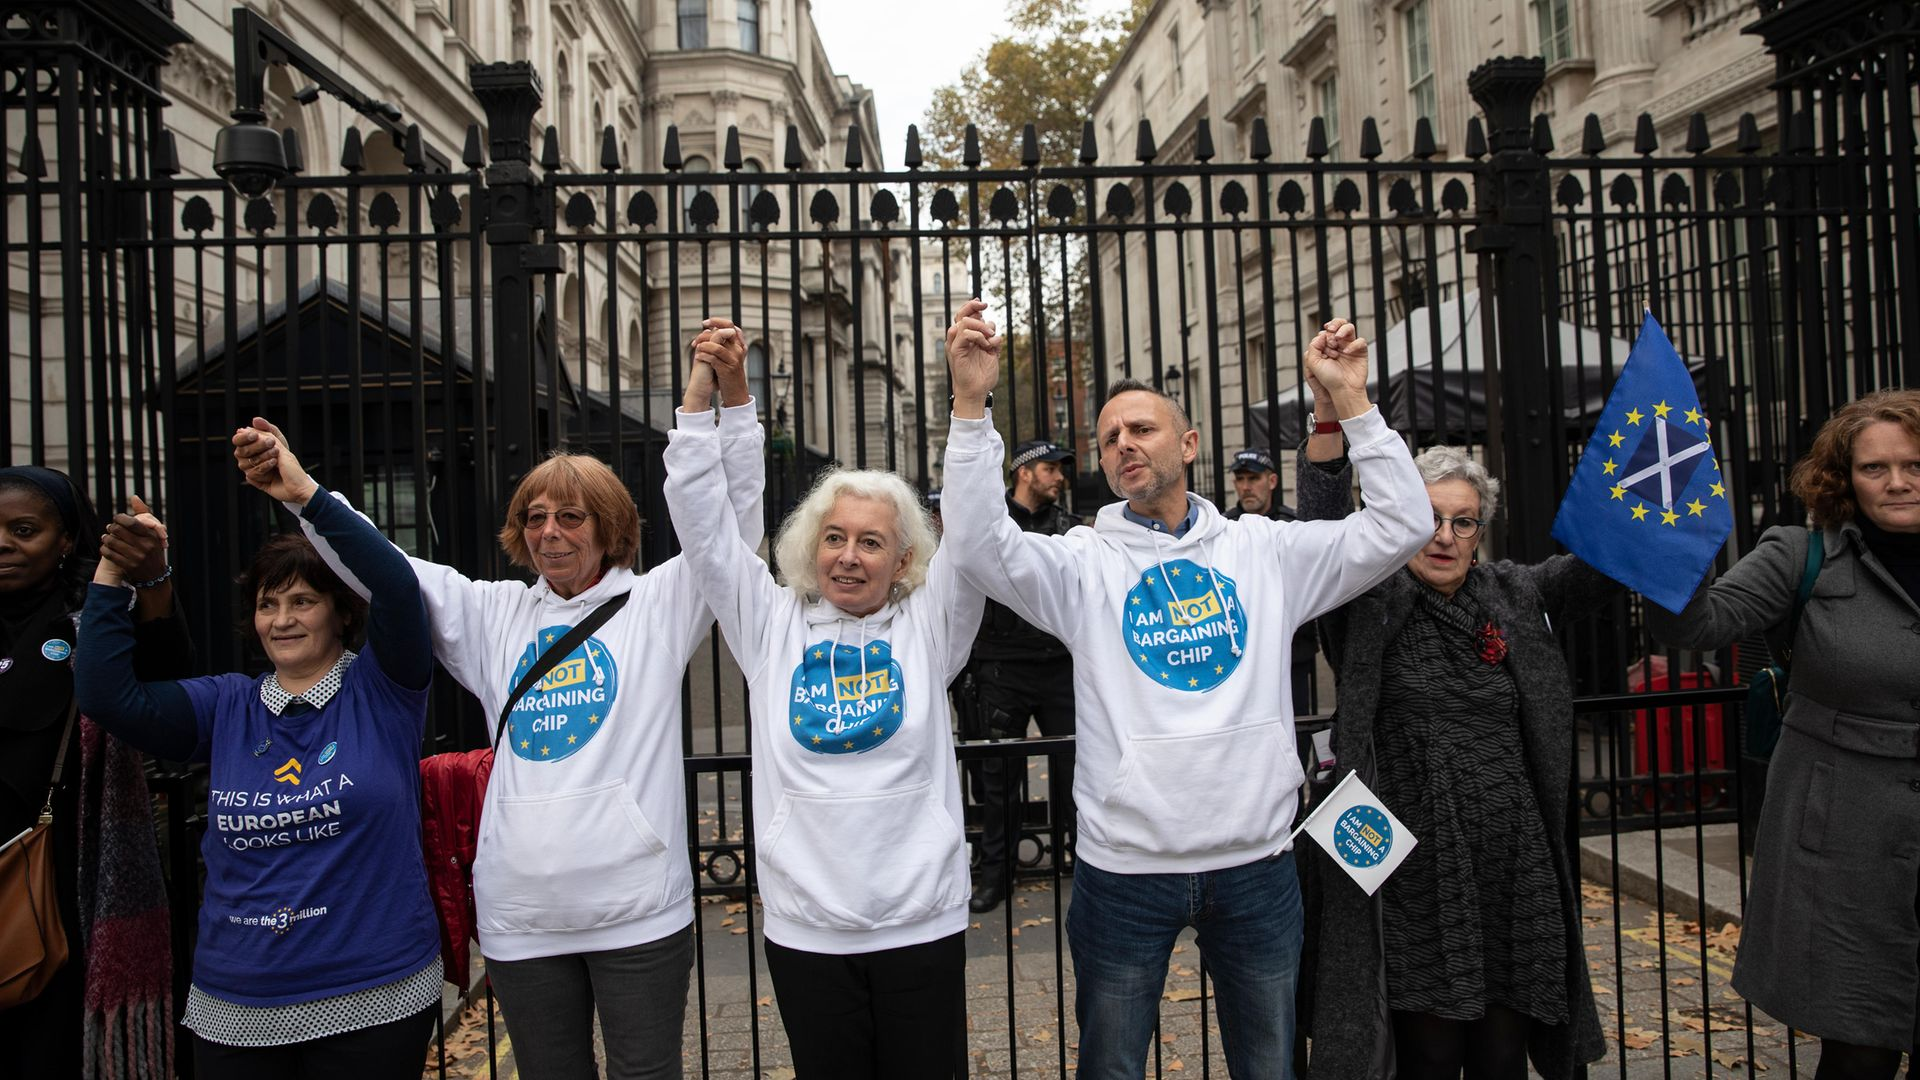 EU nationals, living in the UK take part in a demonstration outside Downing Street - Credit: Getty Images